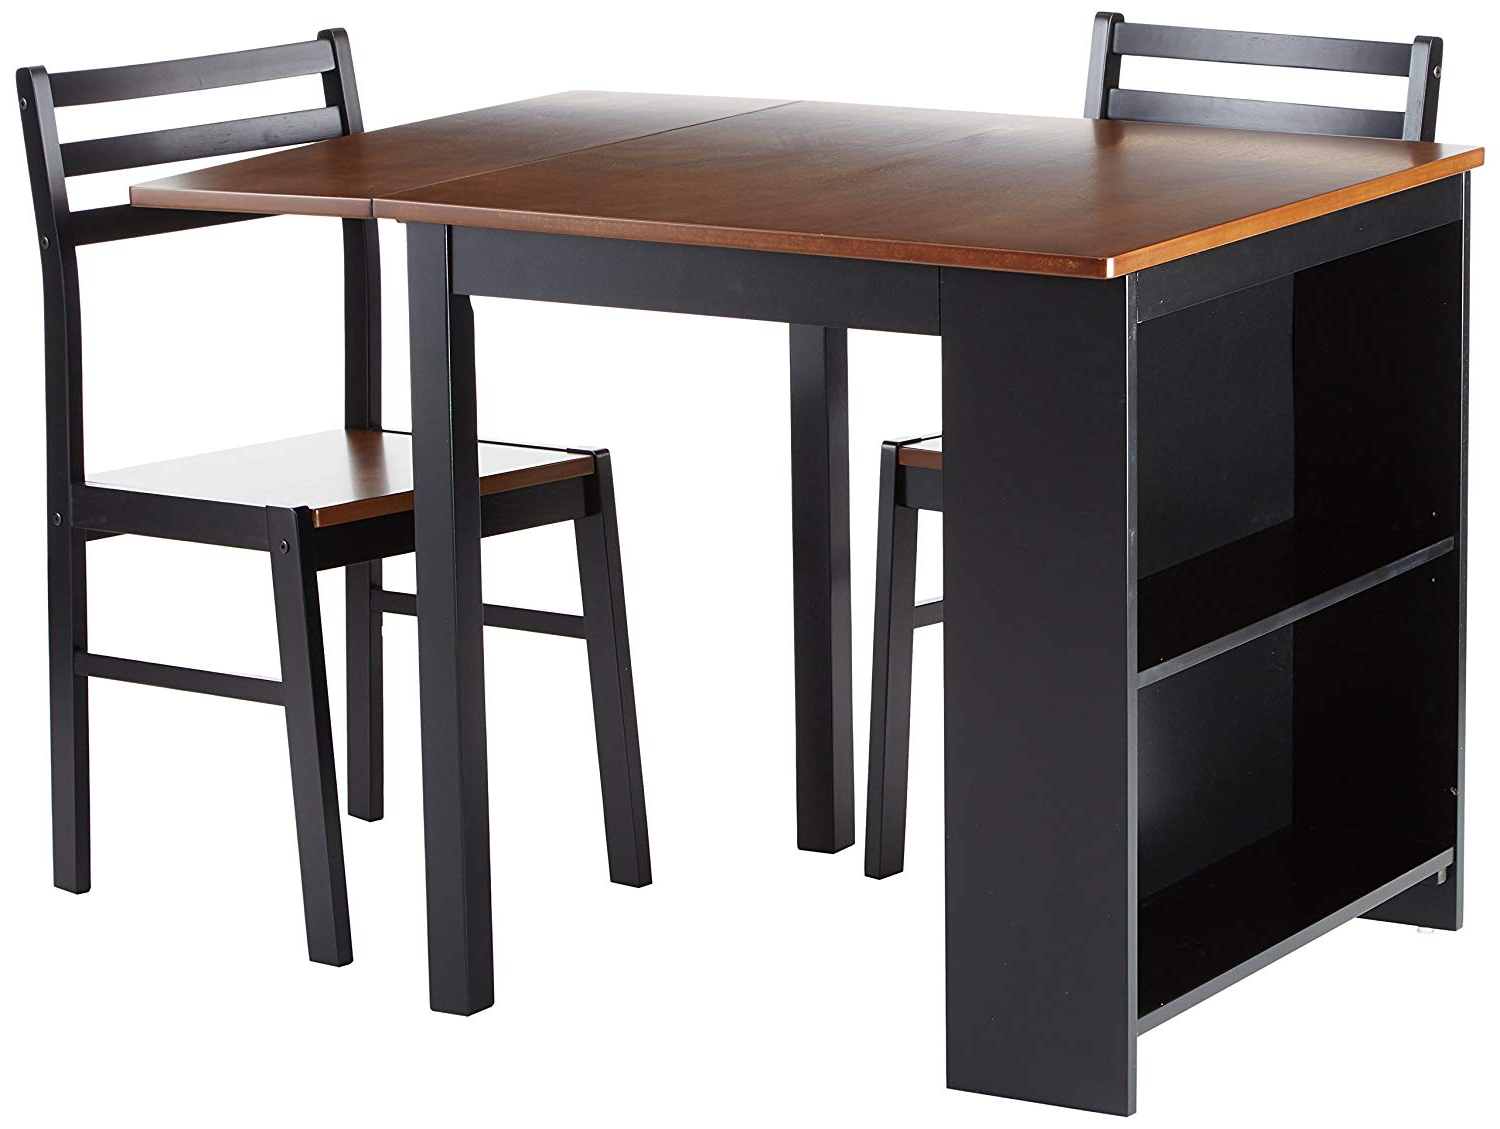 Amazon – Persia 3 Piece Breakfast Dining Set Brown And Black In Most Recent 3 Piece Dining Sets (View 14 of 25)